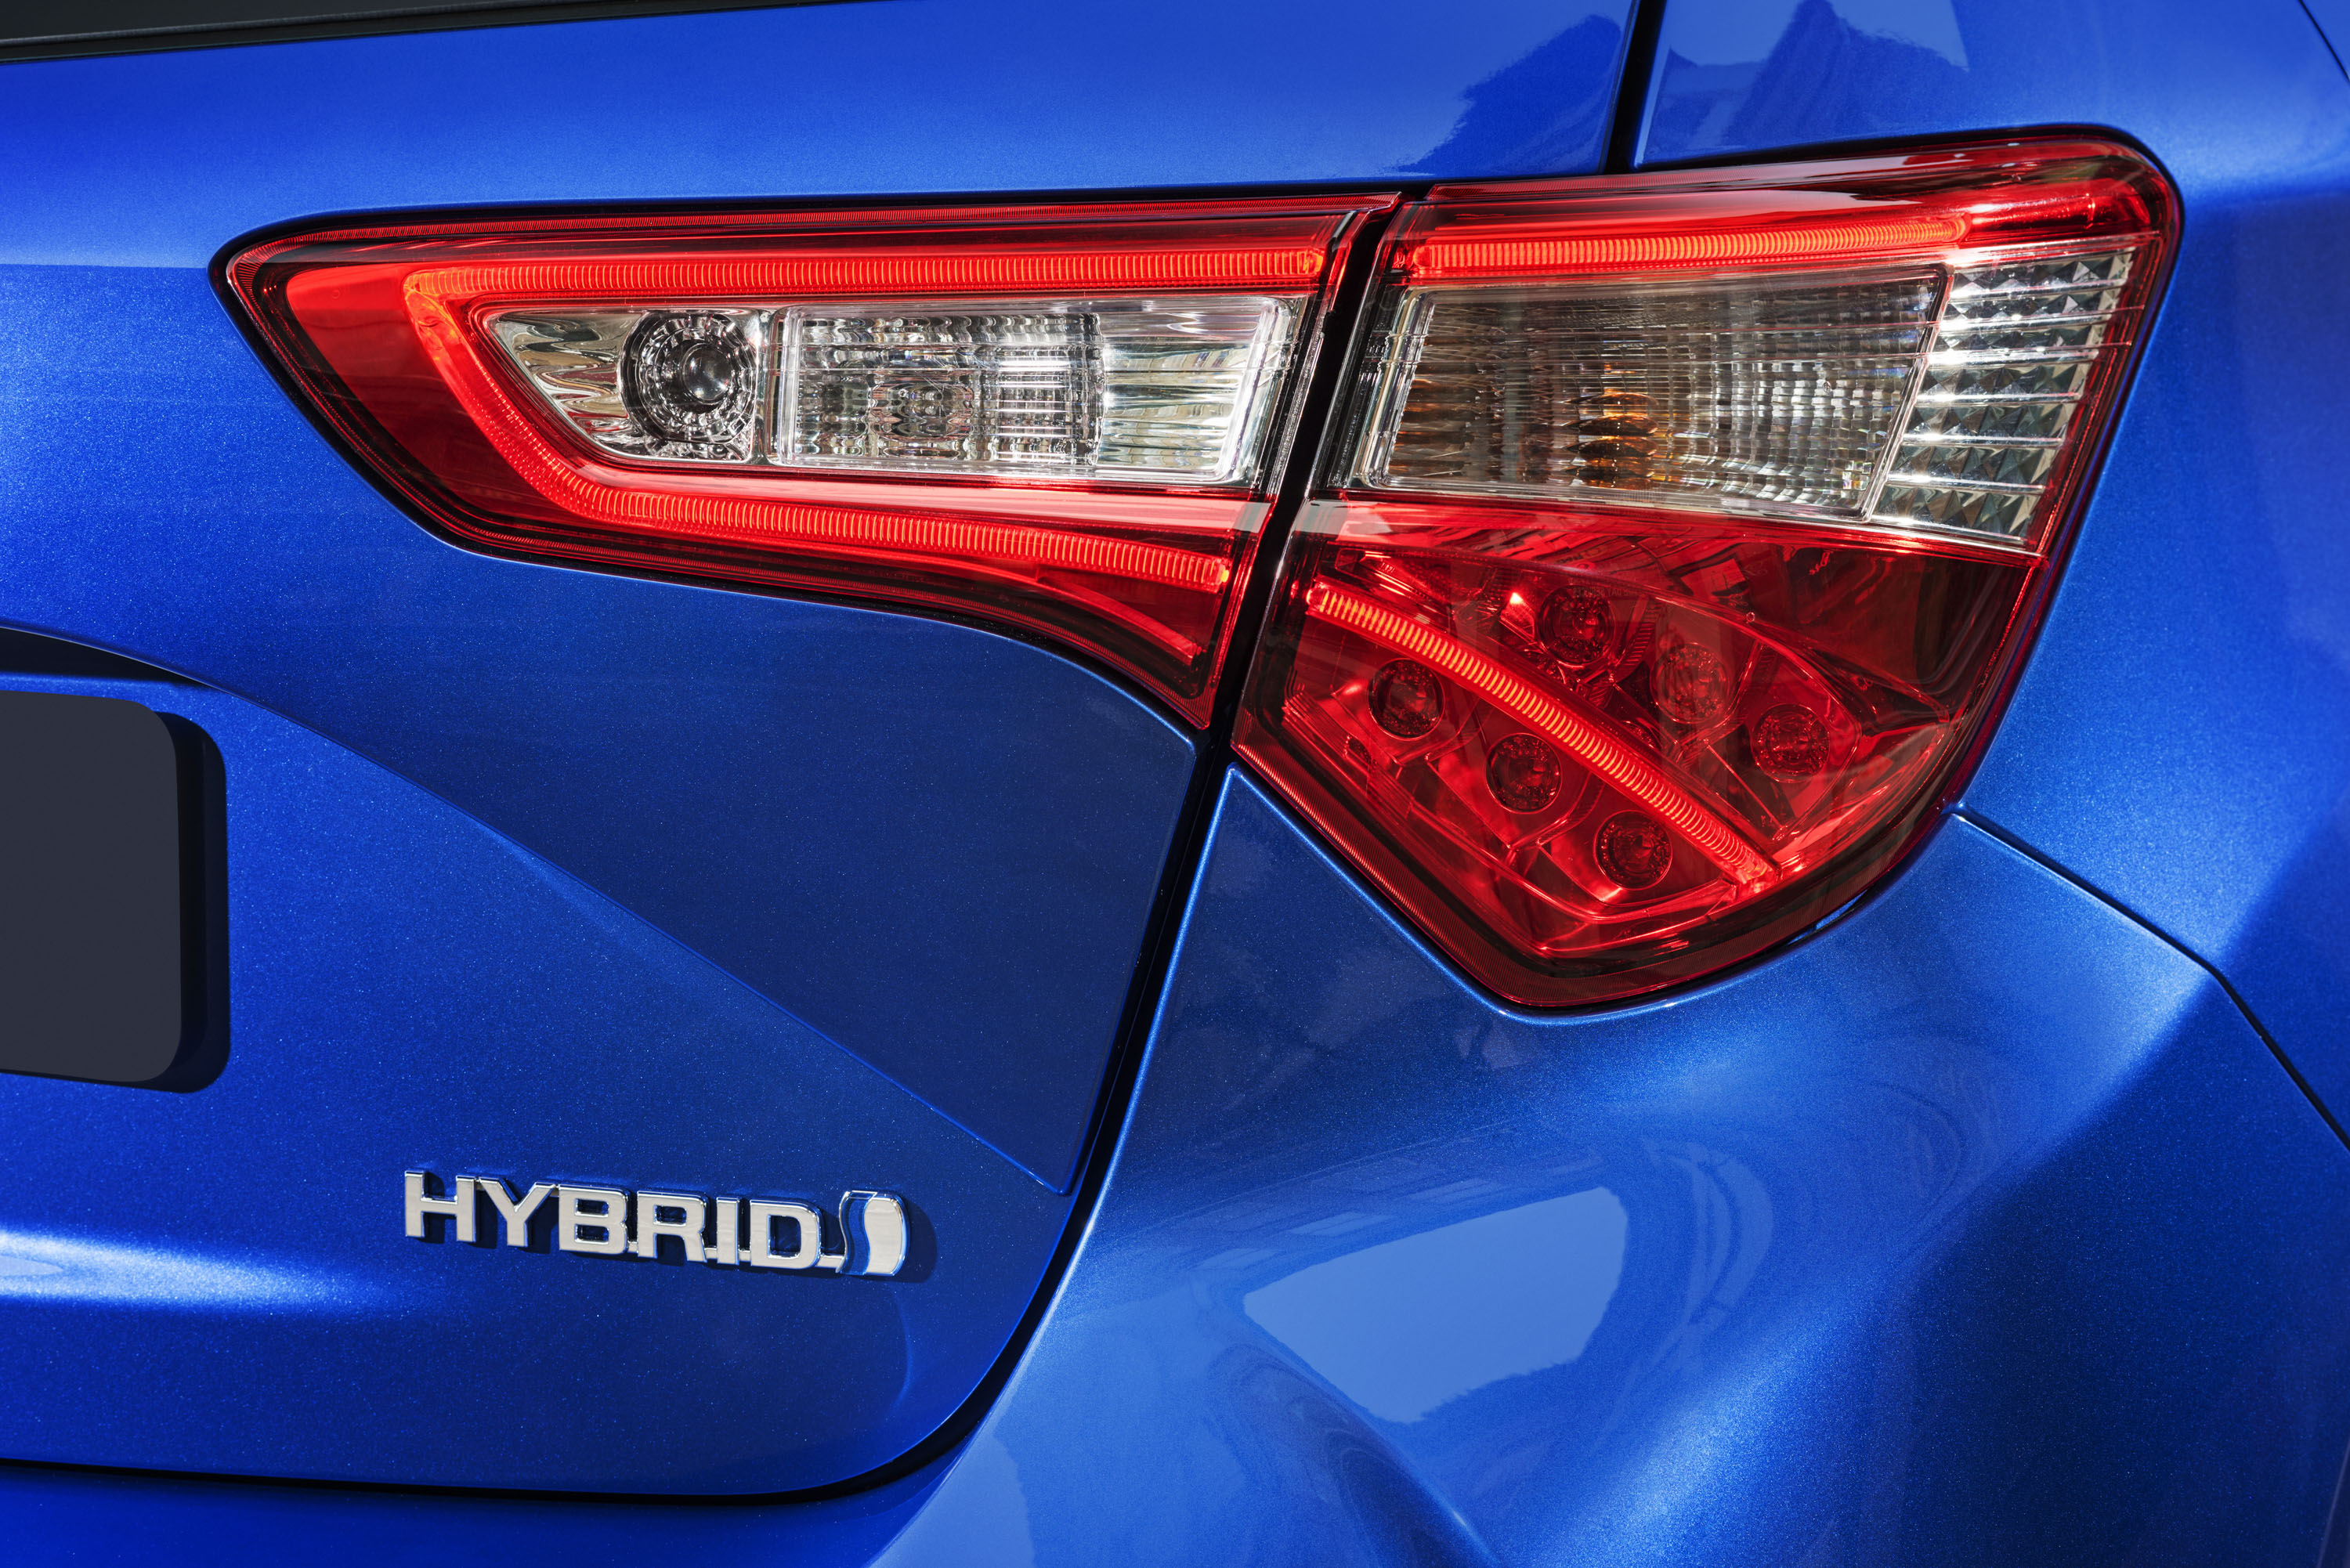 2017 Toyota Yaris Demonstrates How Auto Turnover Is Speeding Up Led Driven Tail Brake Light Cluster Top Speed